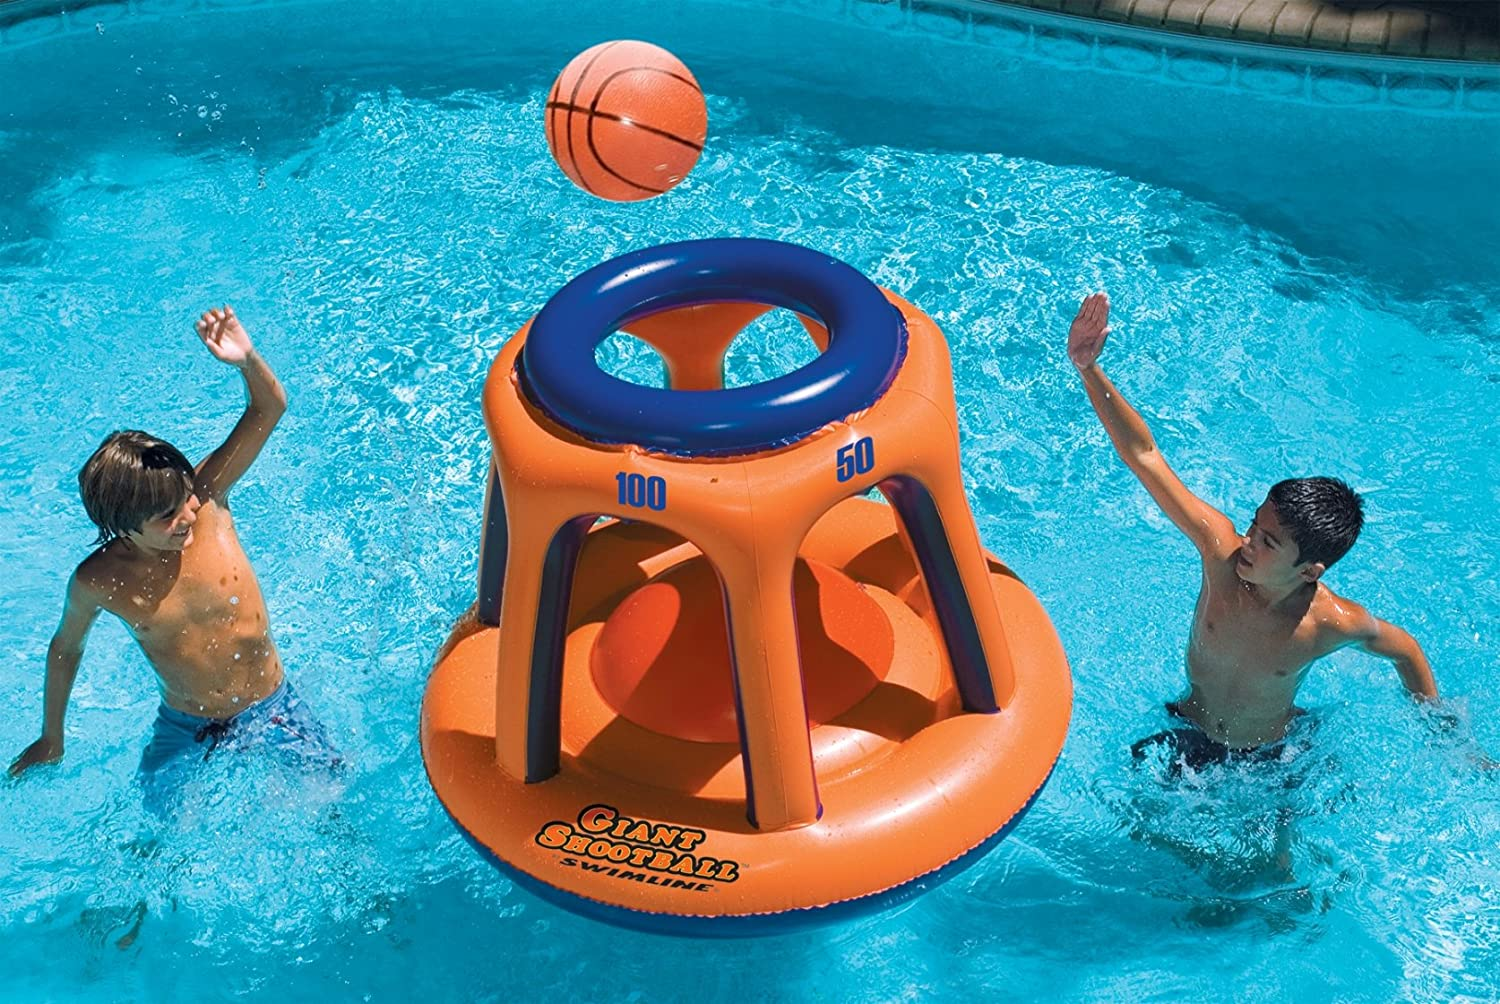 Amazon.com: Swimline Giant Shootball Inflatable Pool Toy: Patio, Lawn U0026  Garden